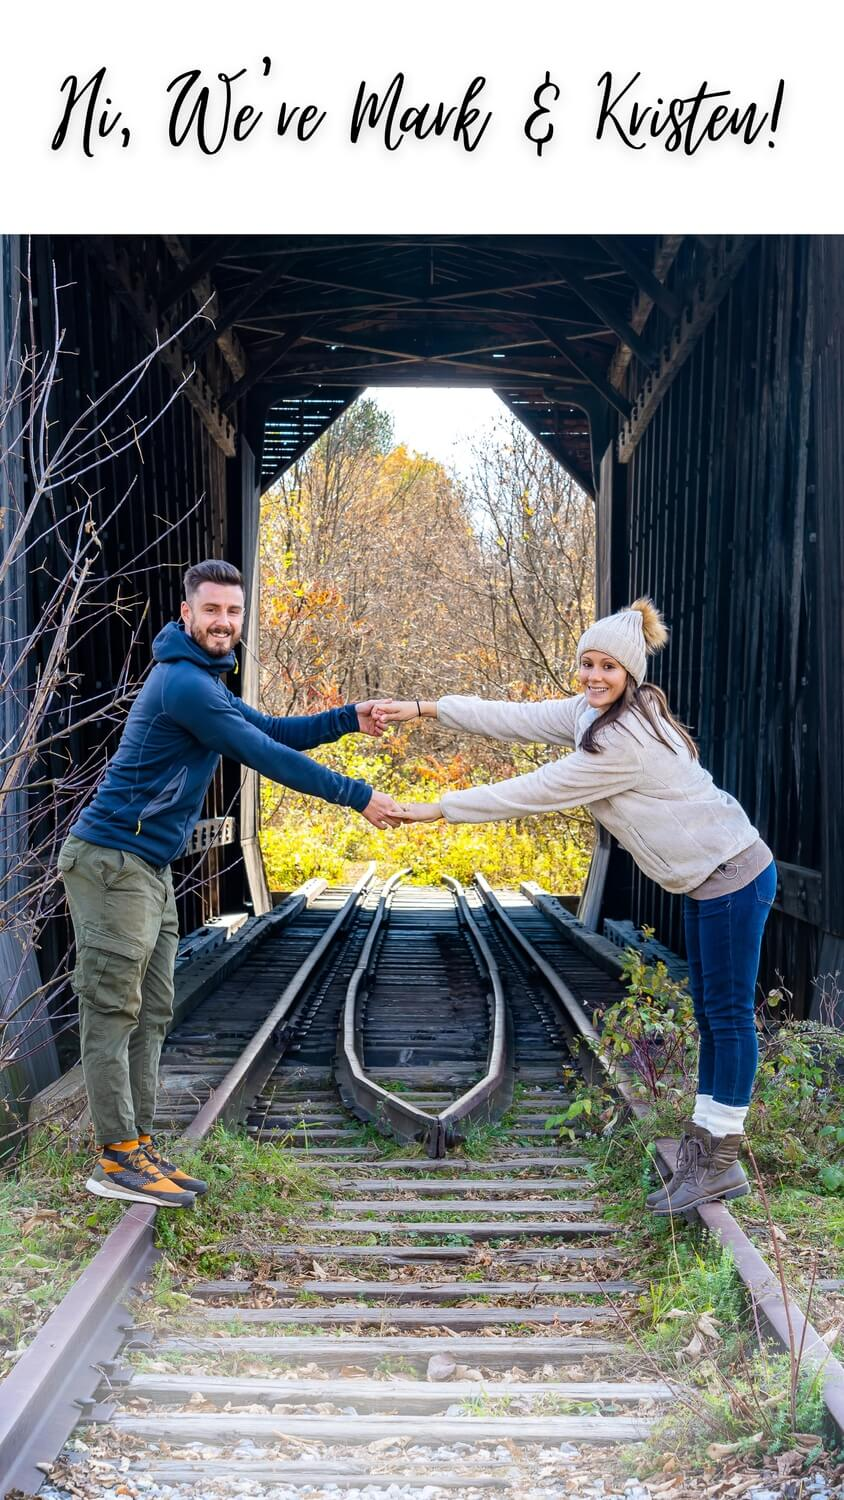 wherearethosemorgans travel adventure photography blog about page mark and kristen on a railroad track in New Hampshire in fall